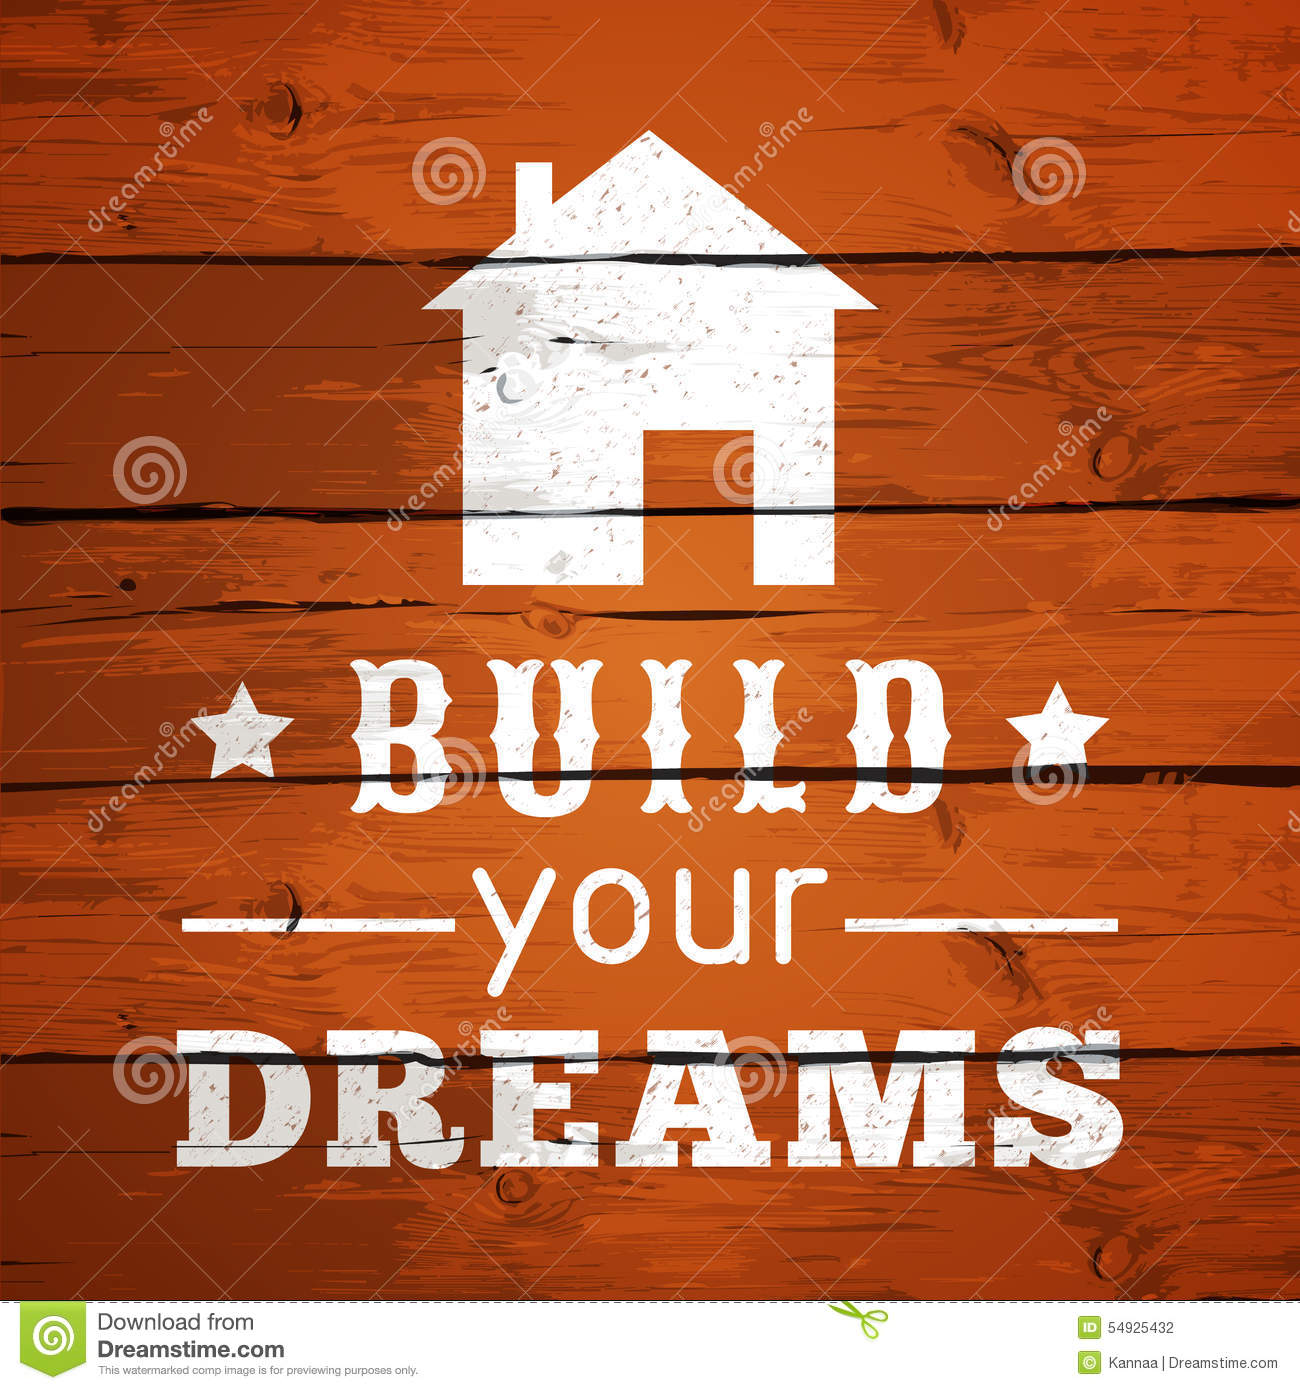 Build your dream home online free home design for Build your home online